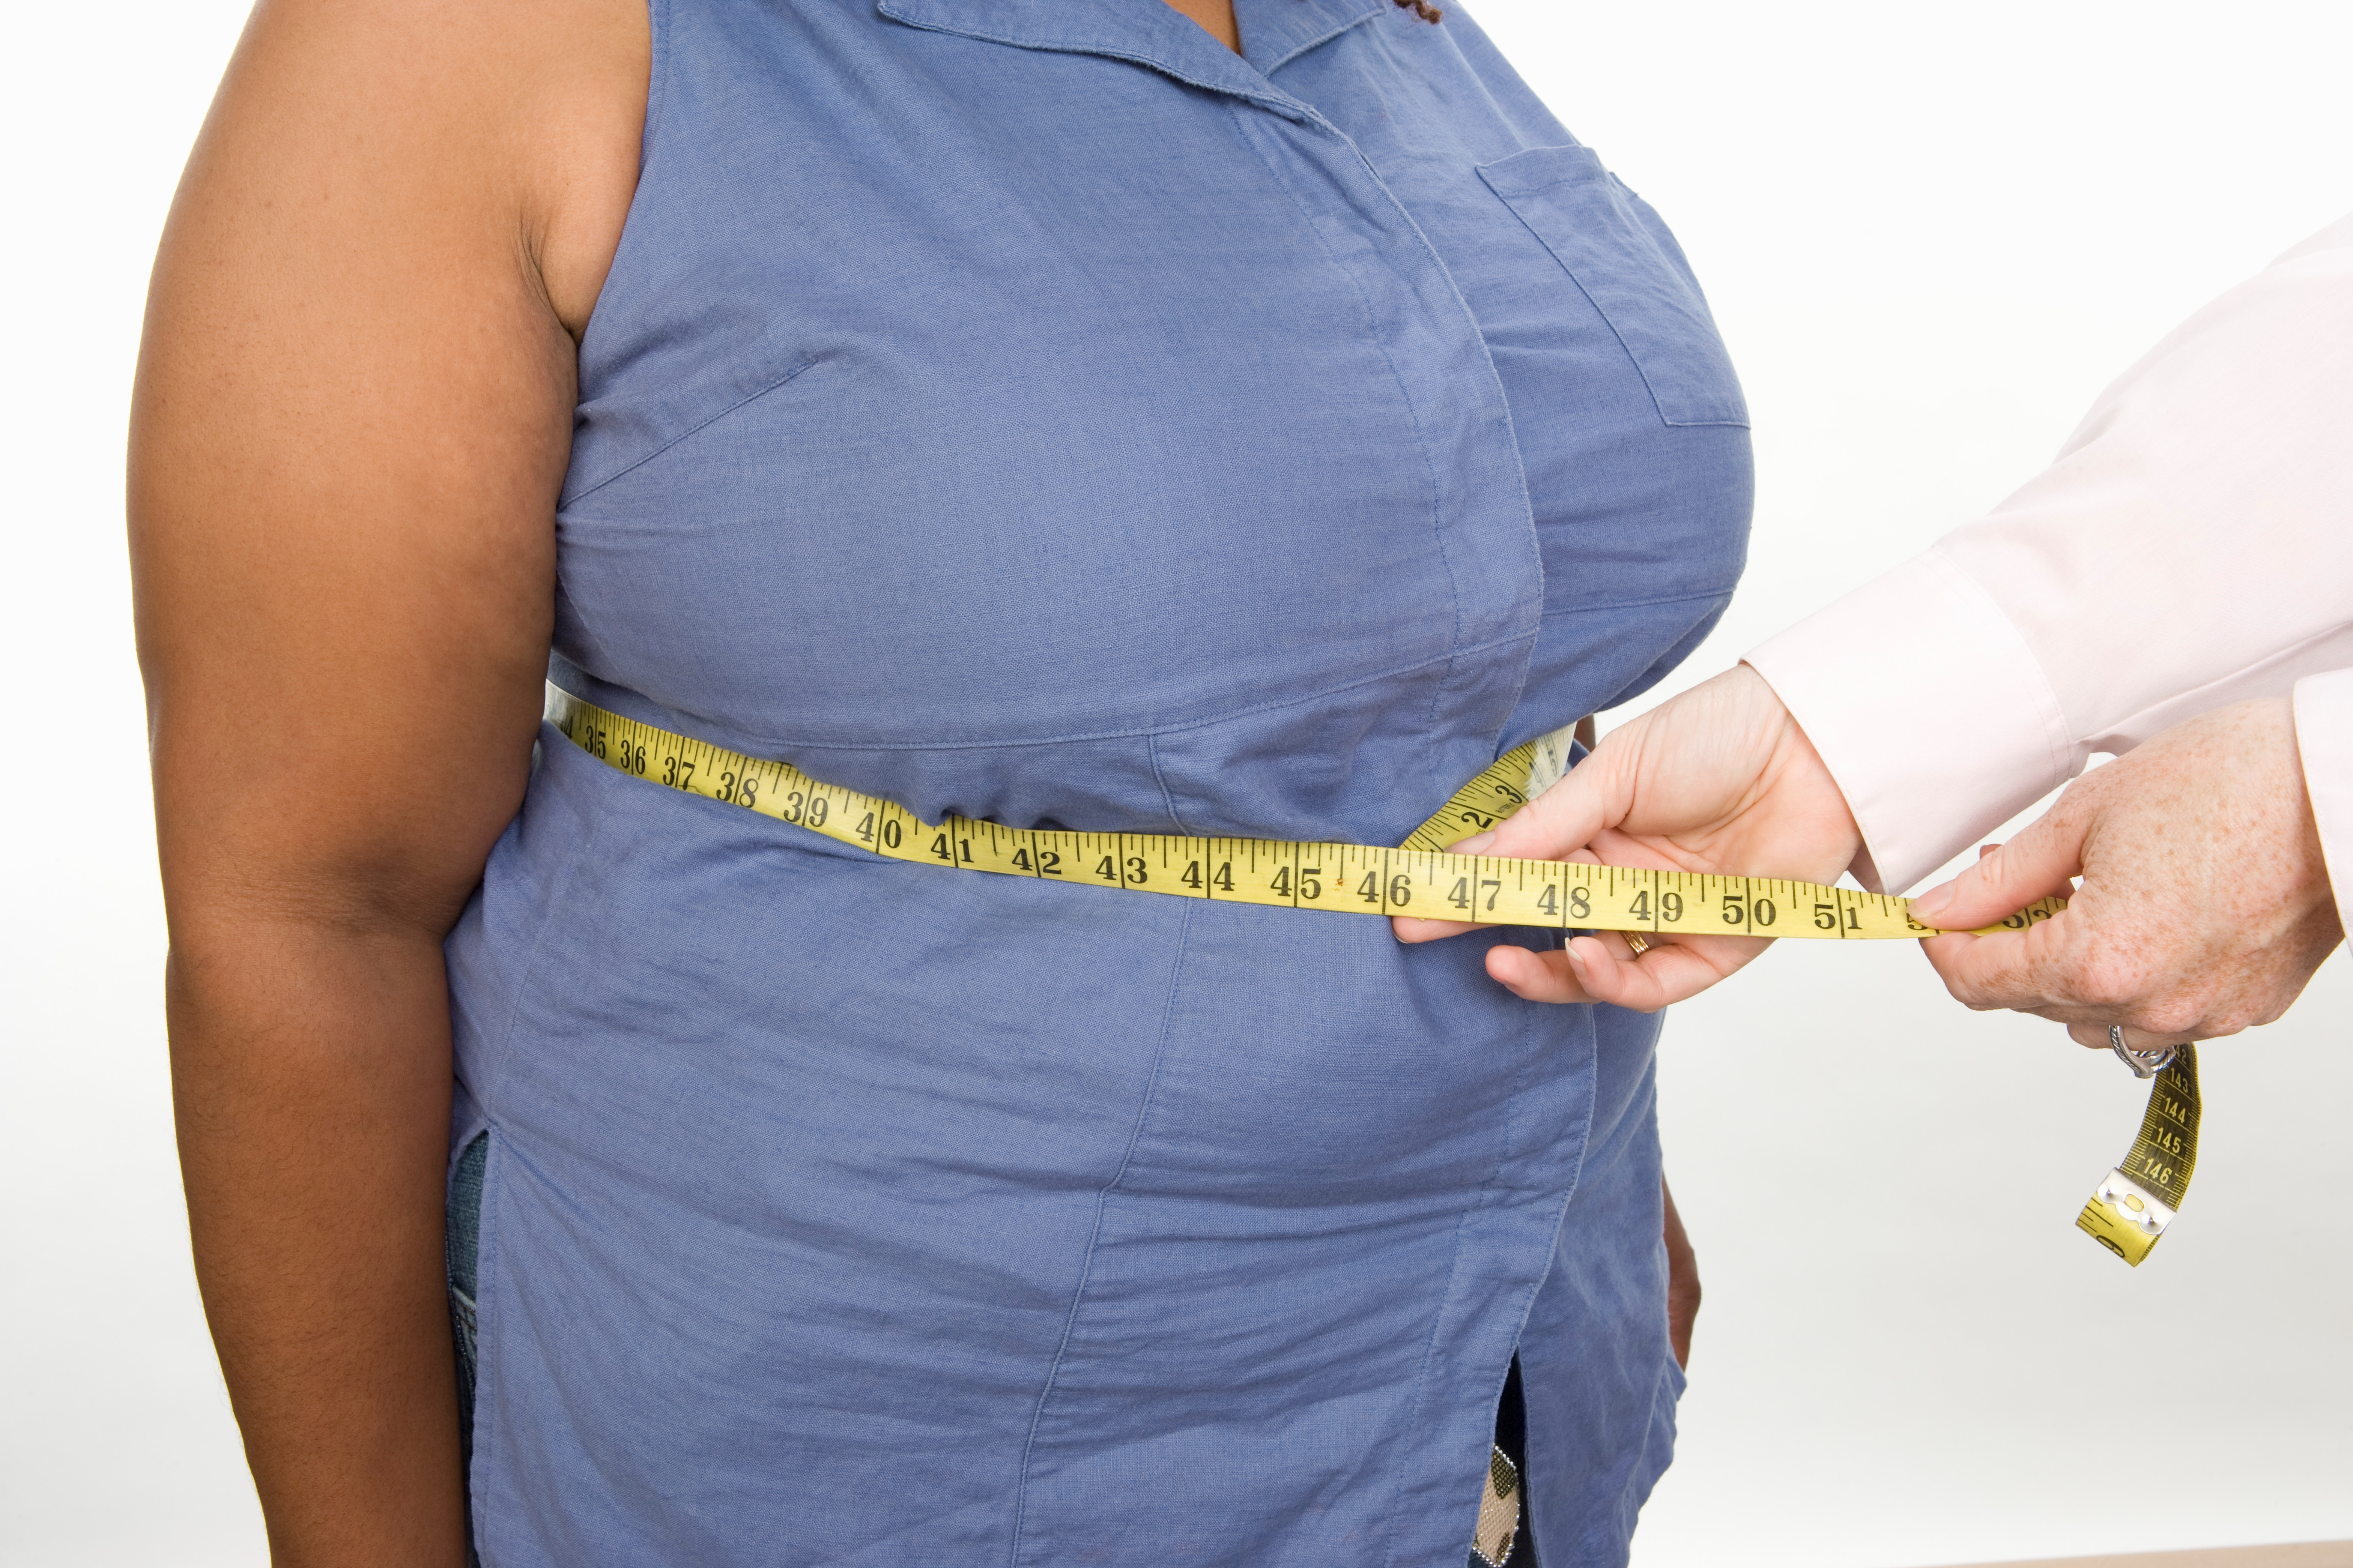 Why does belly fat increase diabetes risk